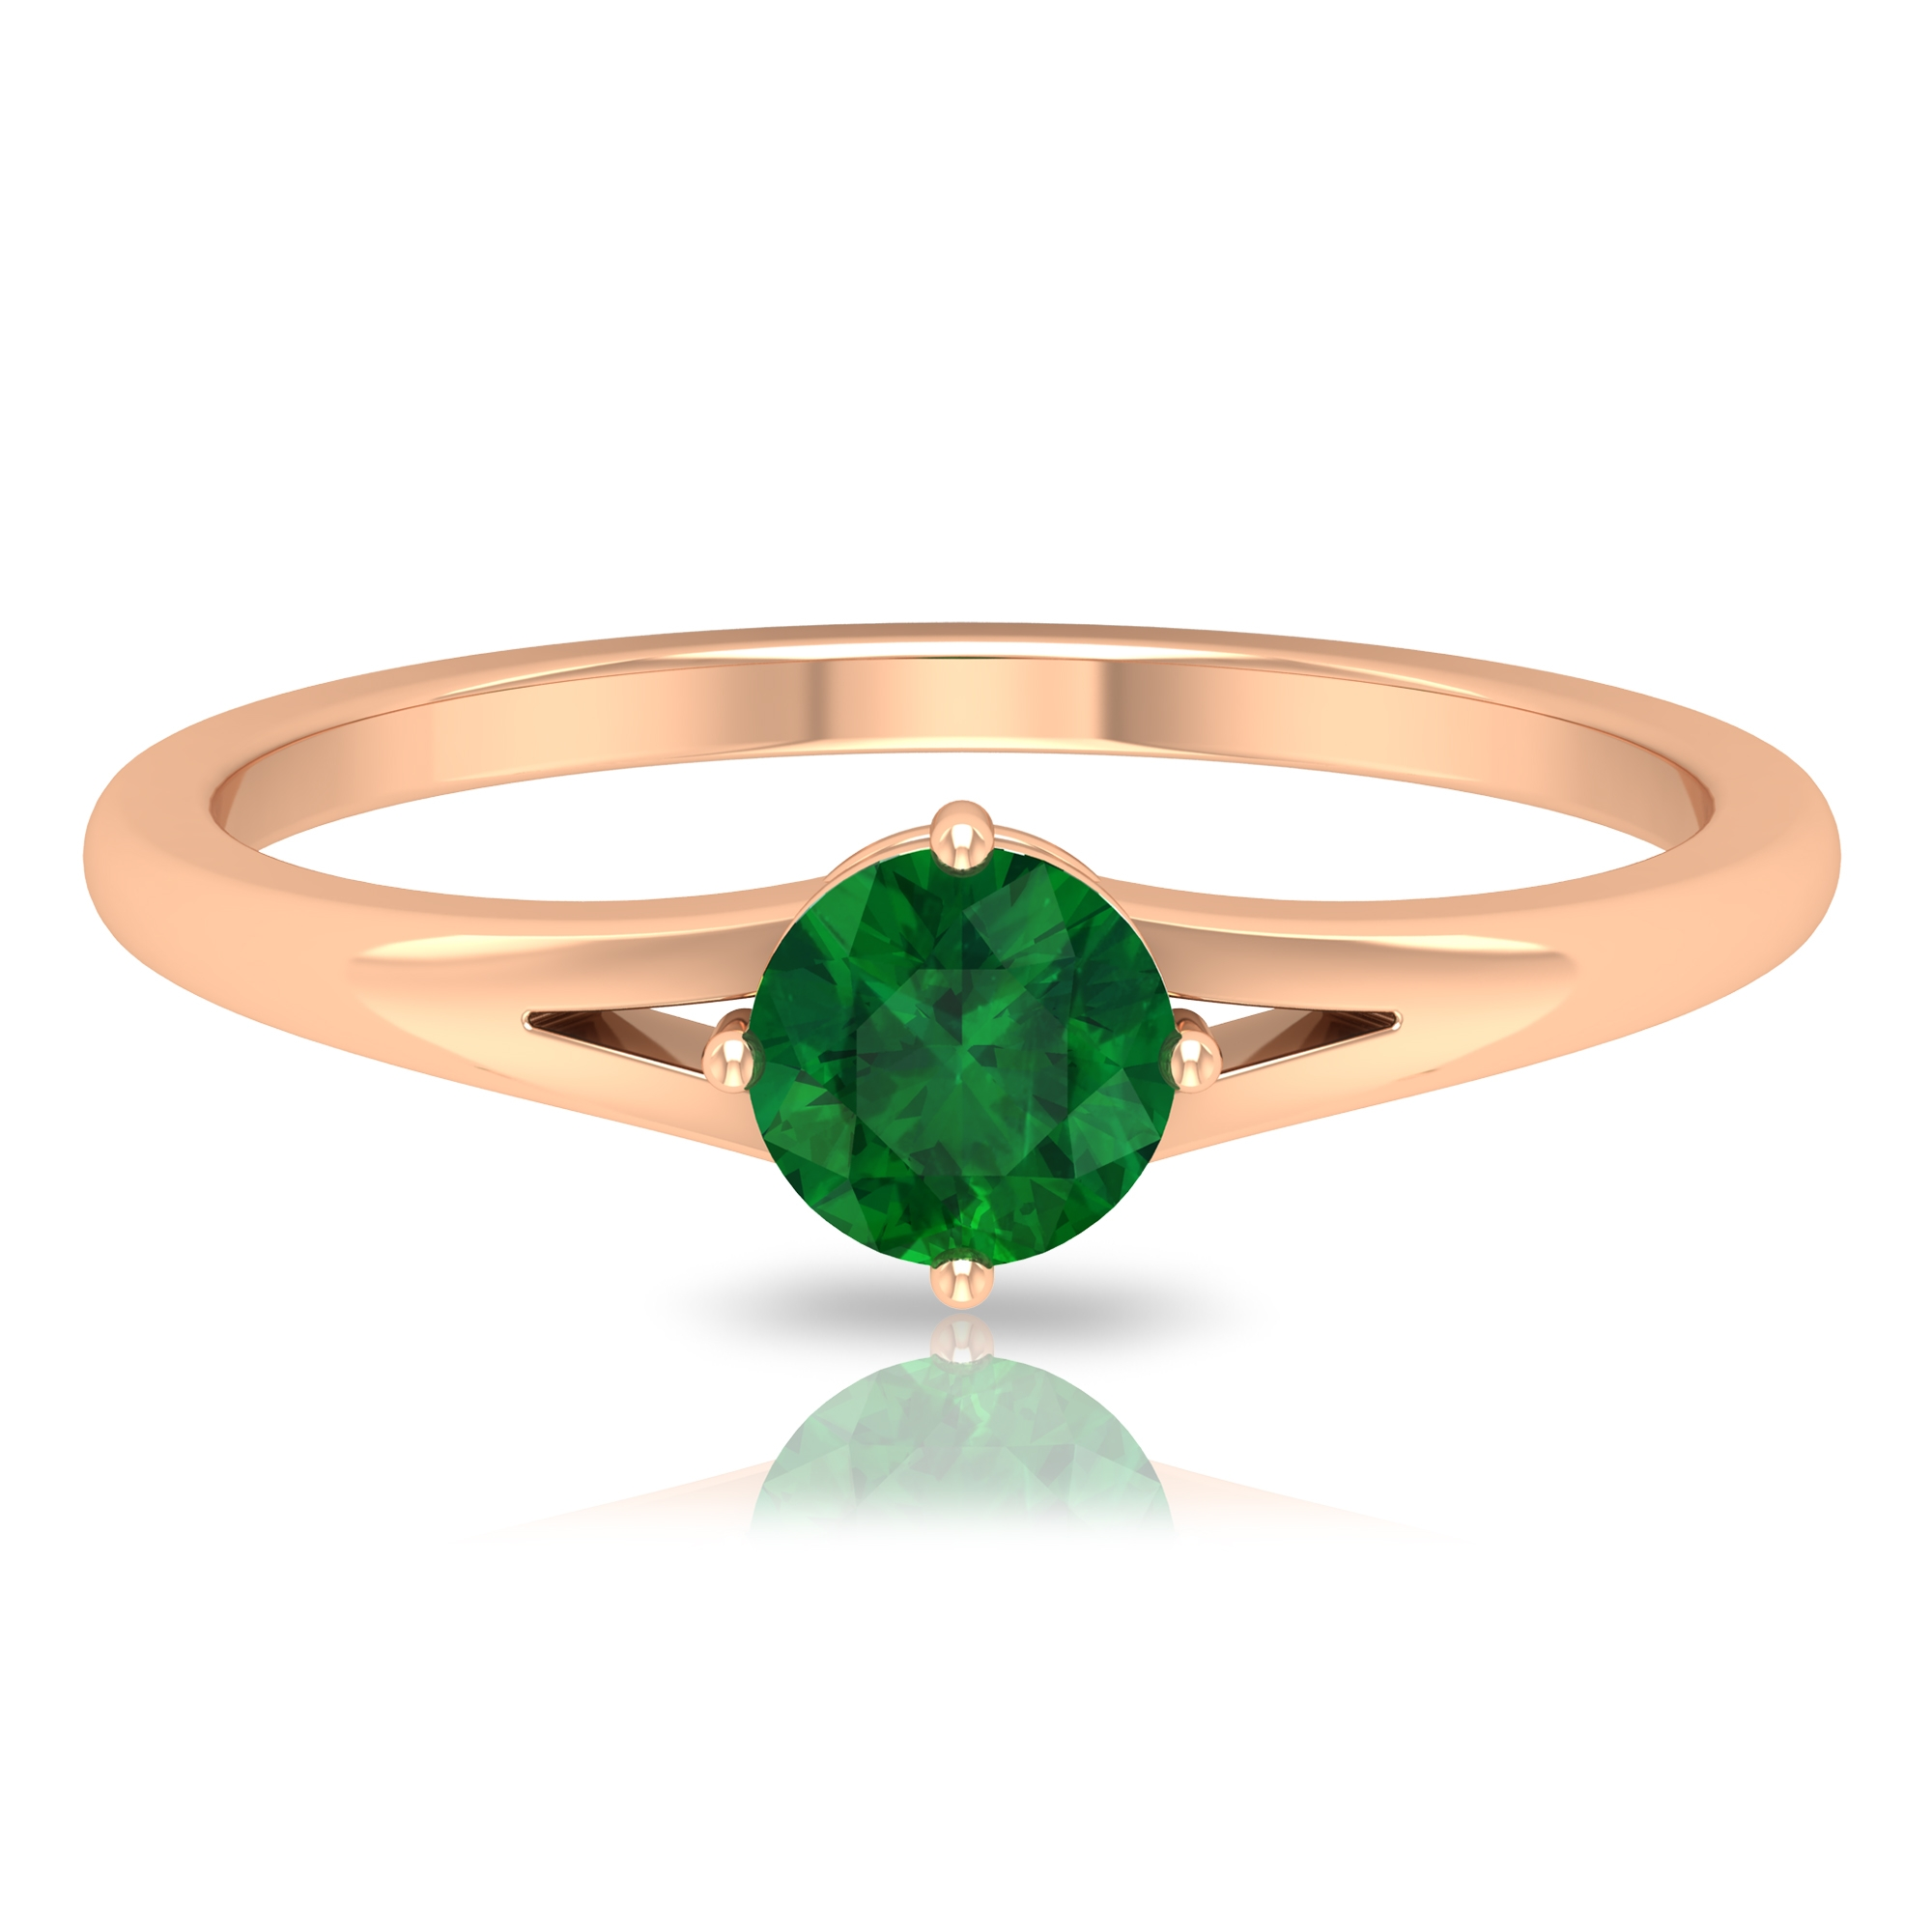 5 MM Round Cut Emerald Solitaire Ring in 4 Prong Diagonal Setting with Split Shank